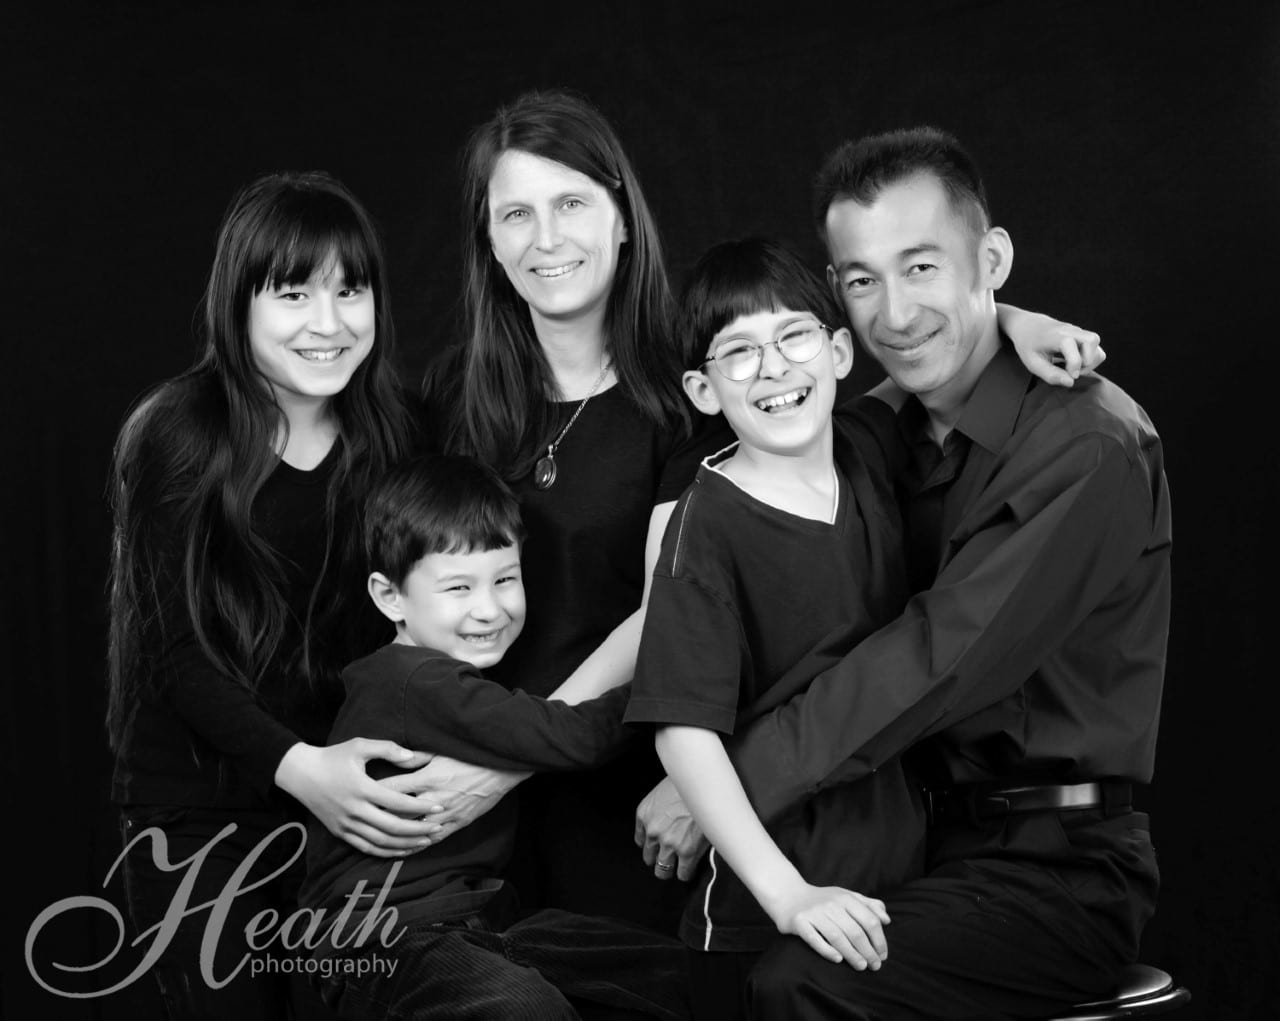 FAMILY SESSION & FRAMED PRINT <br/> Donated by: HEATH PHOTOGRAPHY <br/> Valued at: $390 <br/> Buy It Now: $100